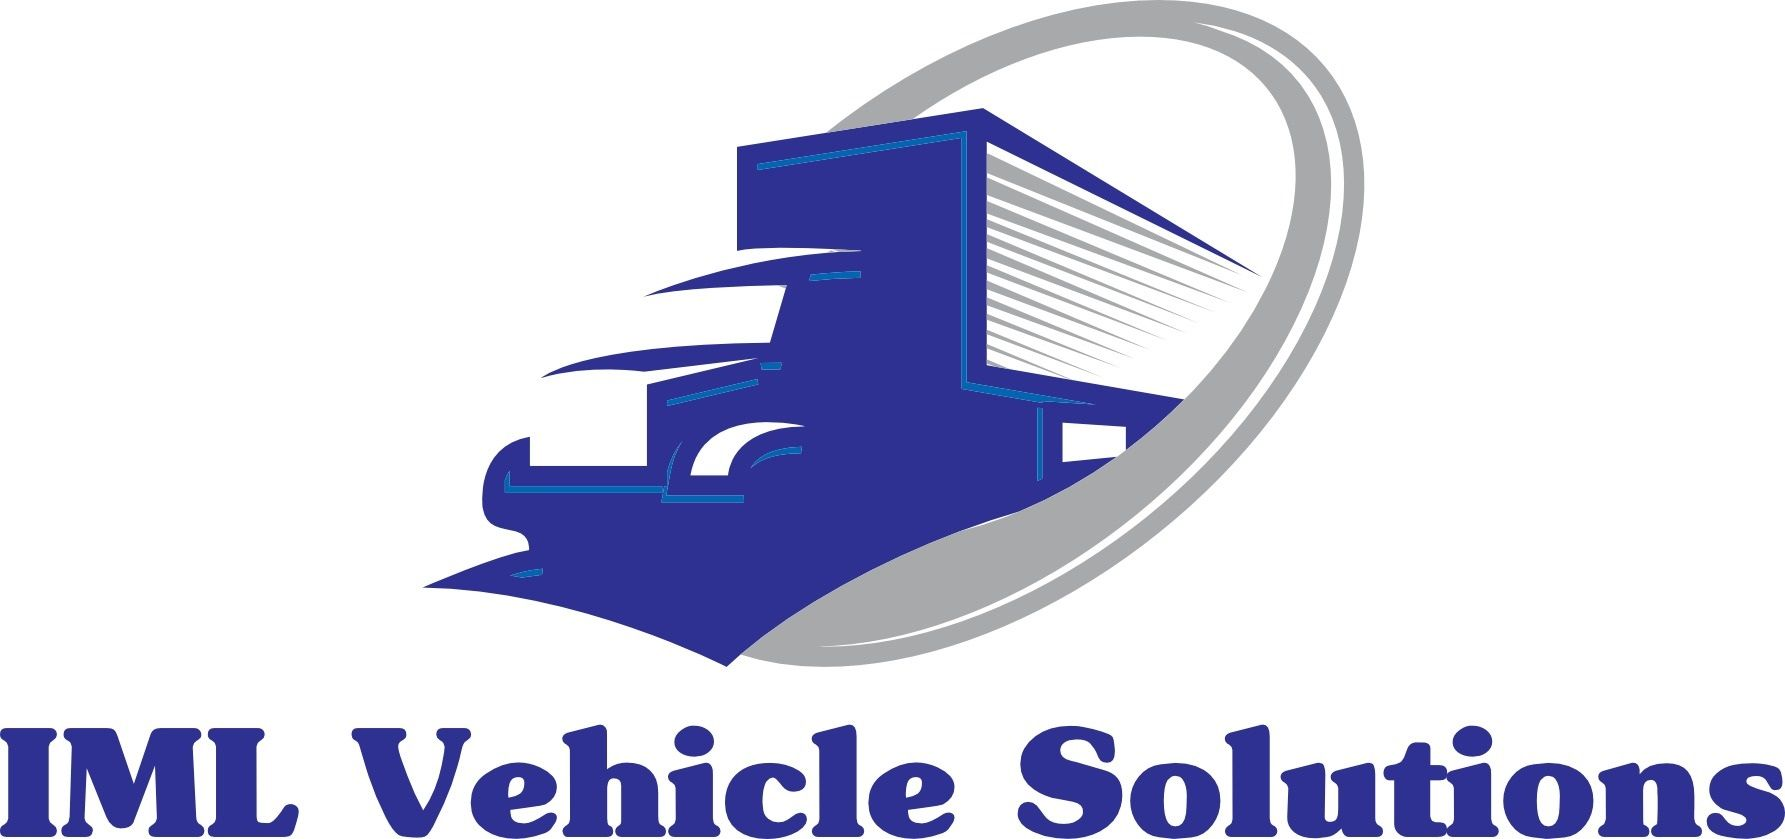 IML Vehicle Solutions